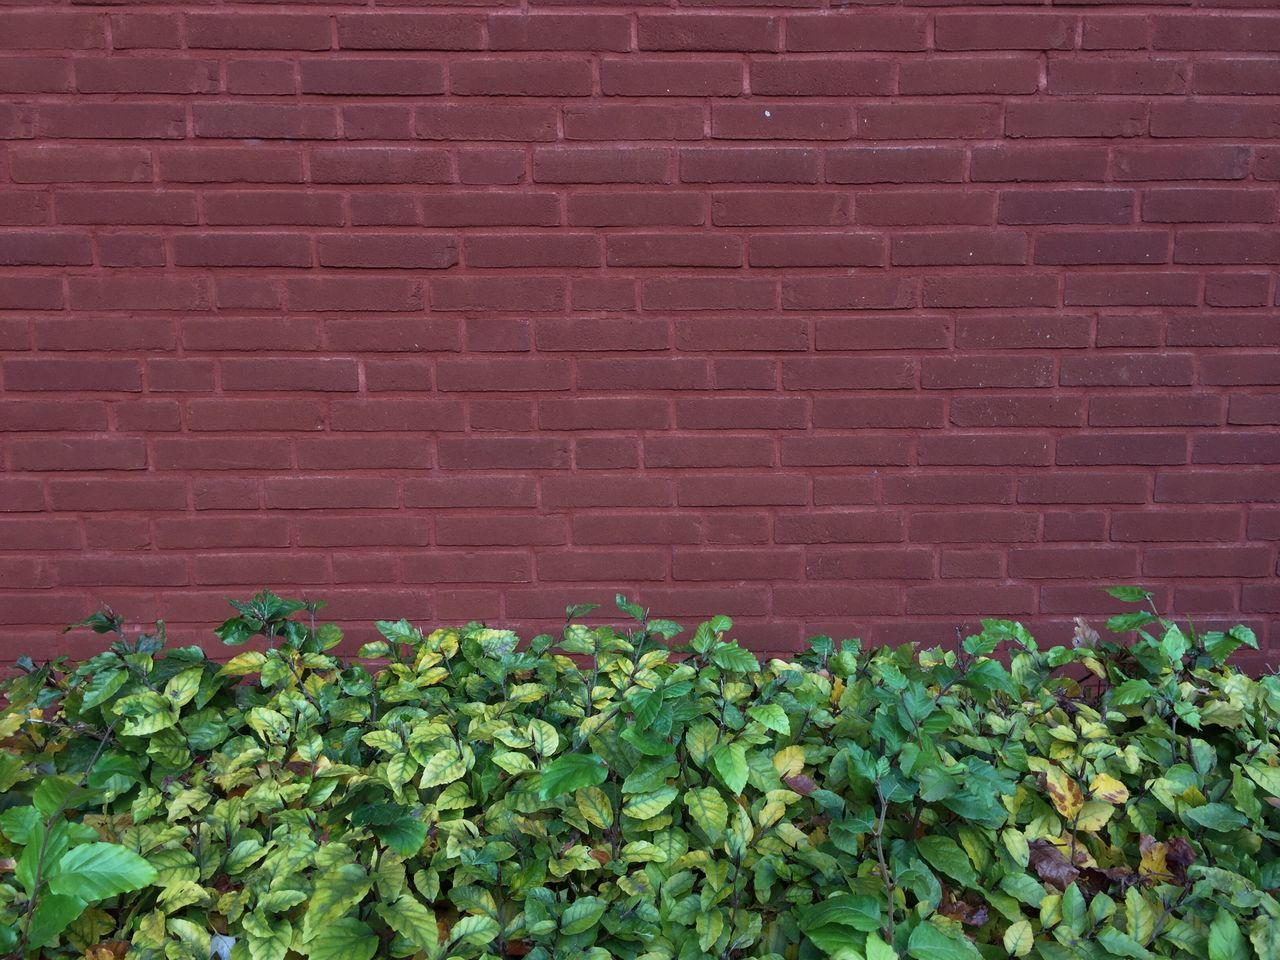 growth, brick wall, wall - building feature, plant, green color, leaf, ivy, built structure, no people, day, outdoors, architecture, nature, freshness, fragility, close-up